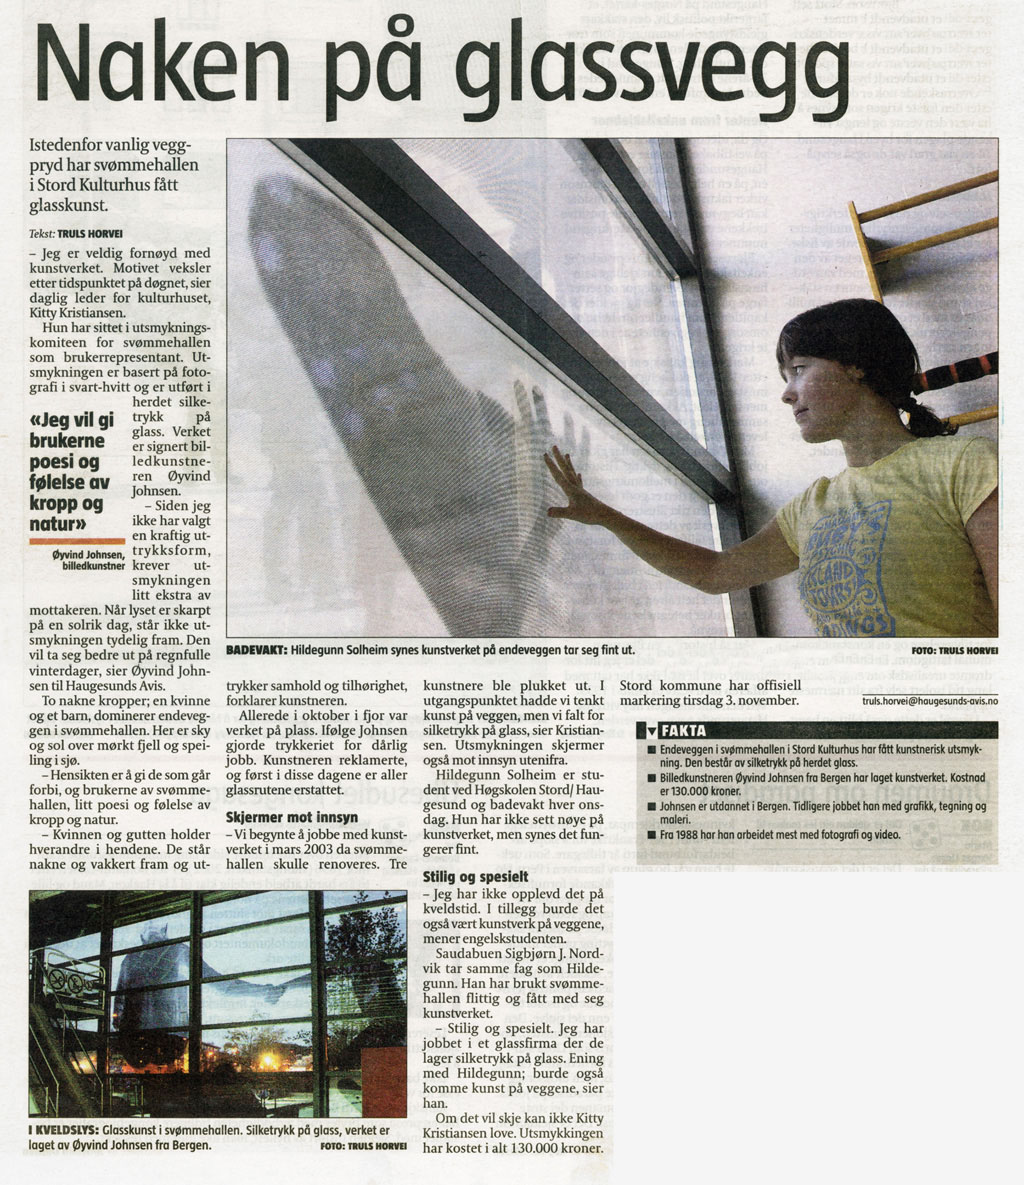 000ny 2004-newspaper-article-Haugesunds-Avis-1